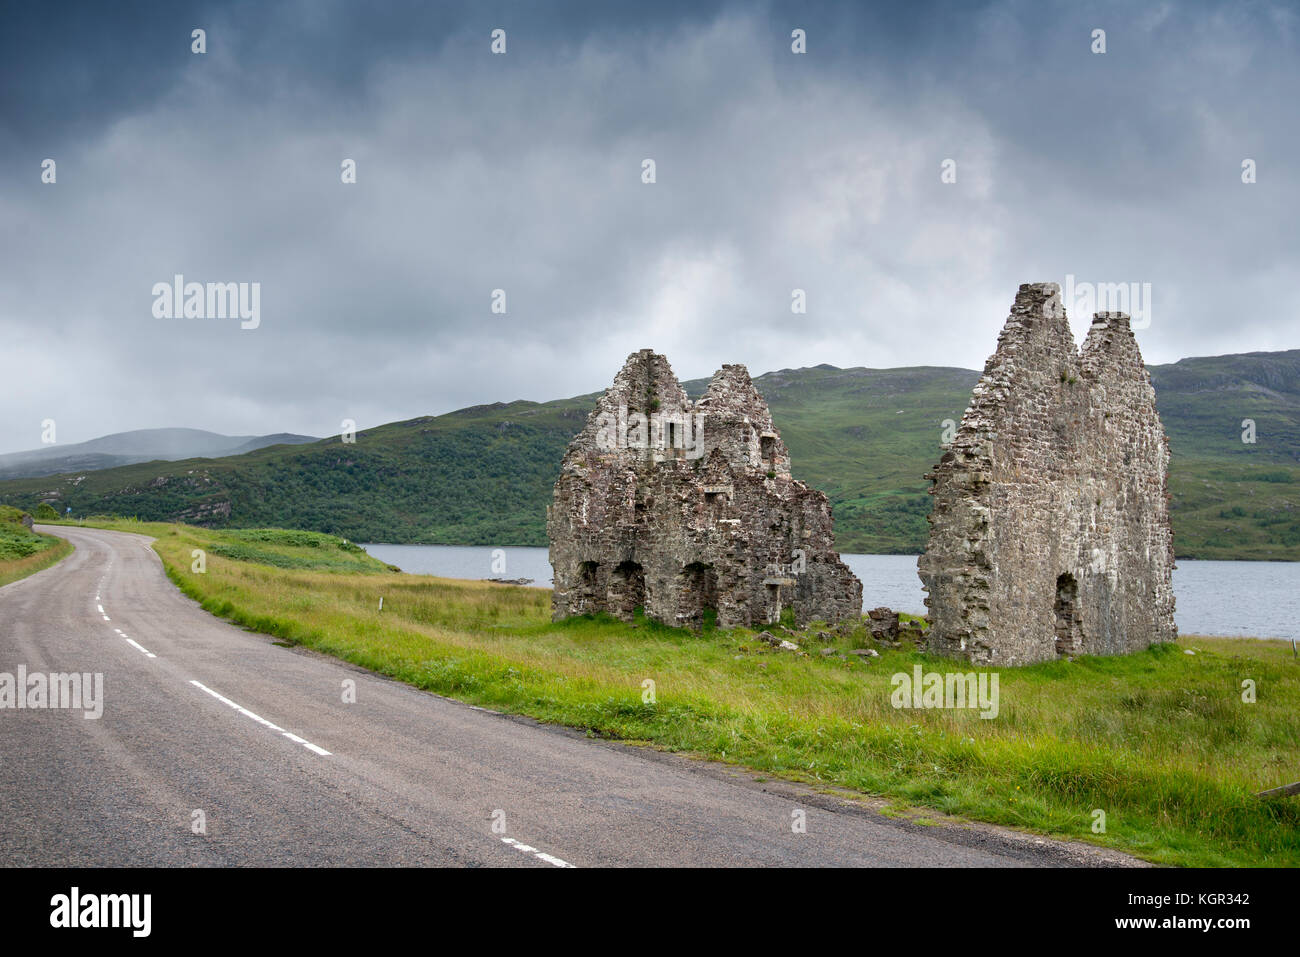 Ruins of Calda House by Loch Assynt in Sutherland, Scotland, on the route of the North Coast 500 scenic drive - Stock Image